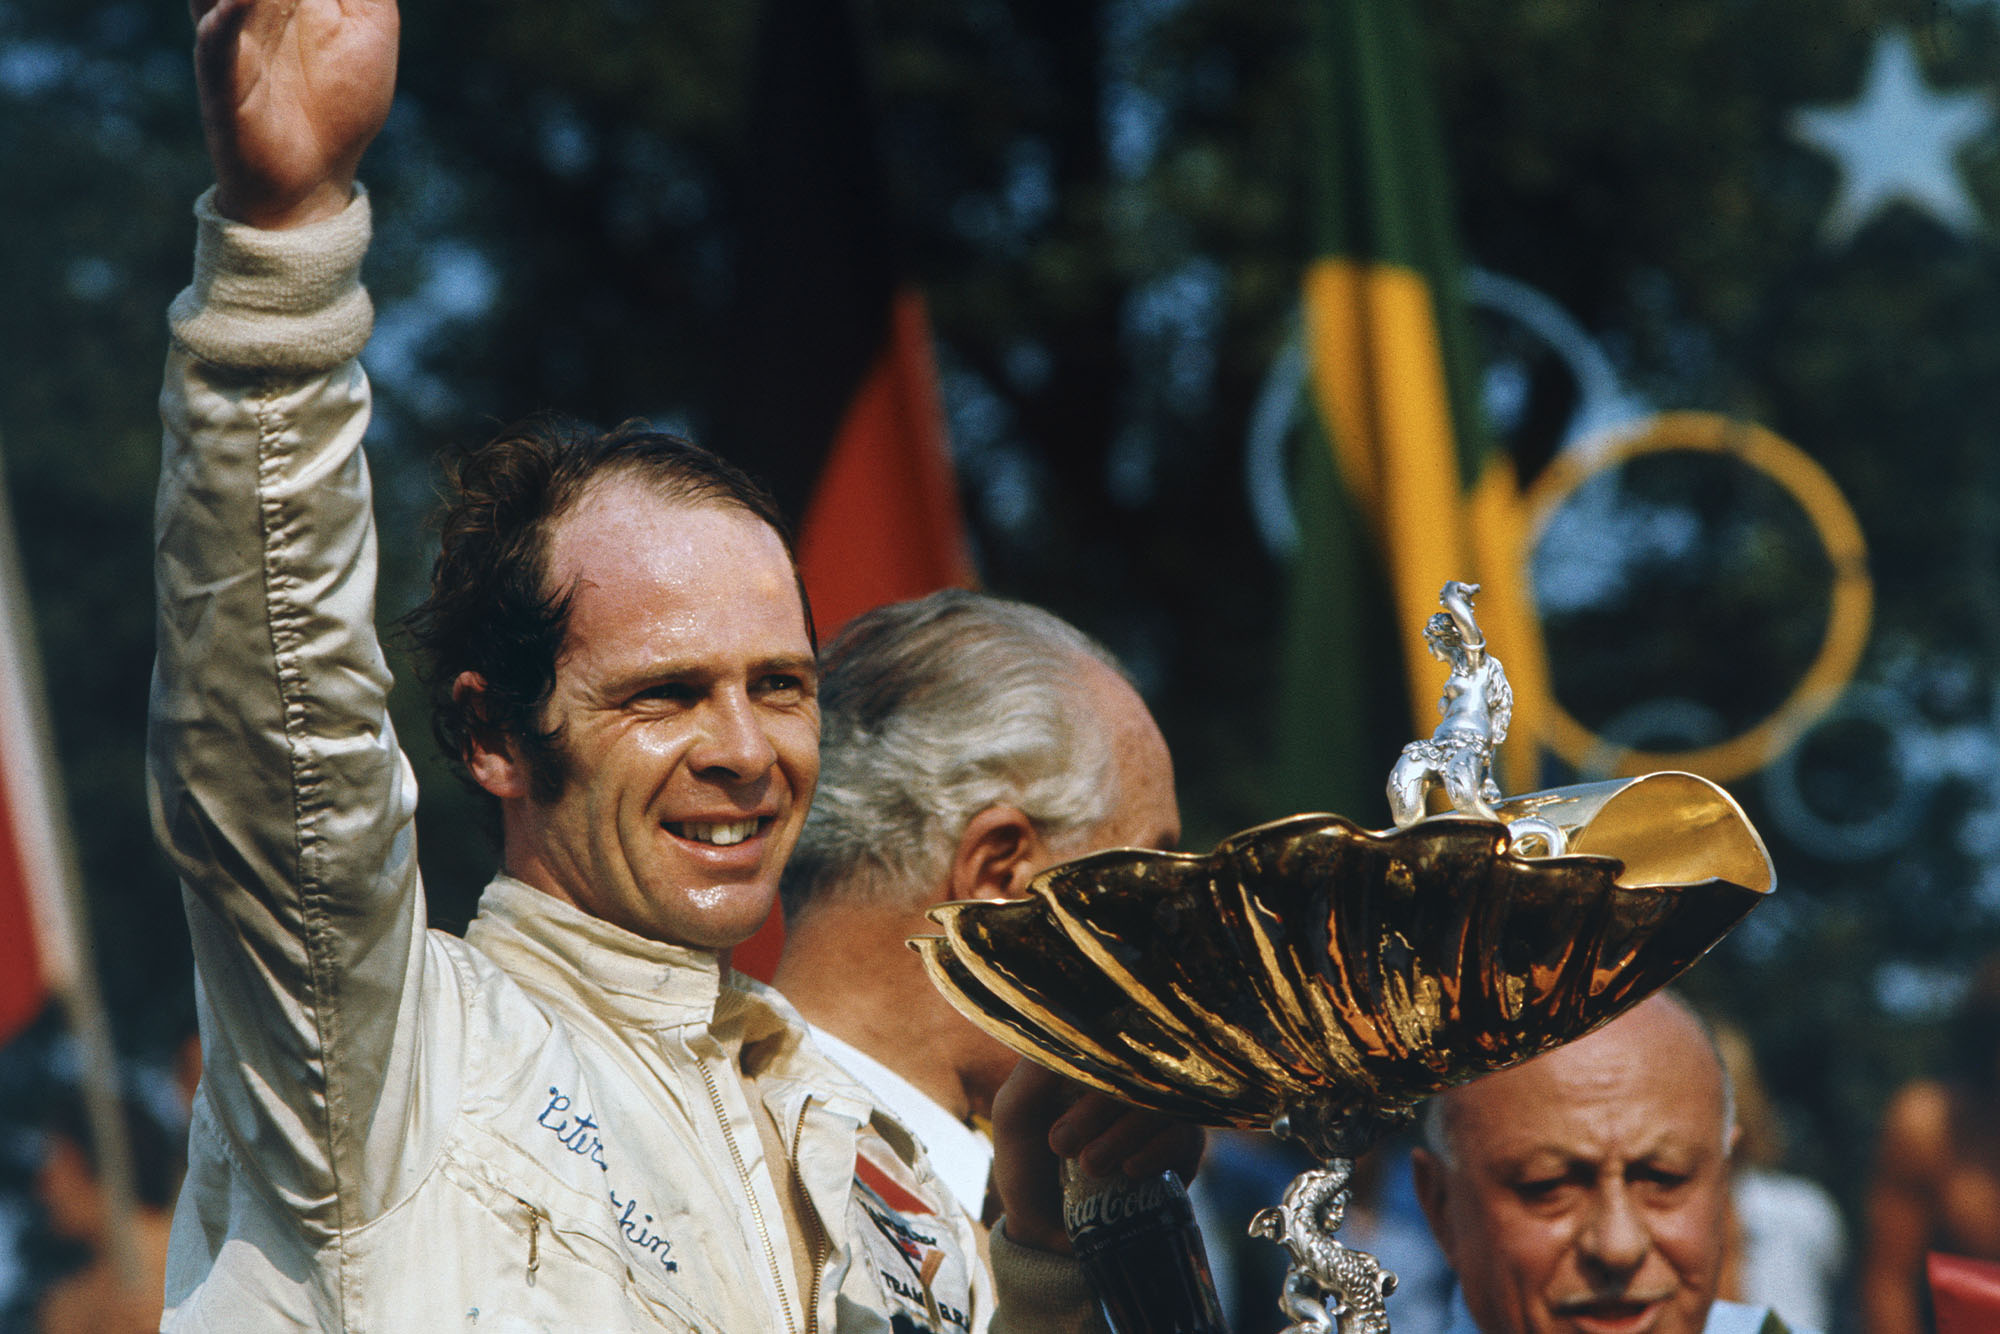 BRM's Peter Gethin celebrates his debut win on the podium at the 1971 Italian Grand Prix